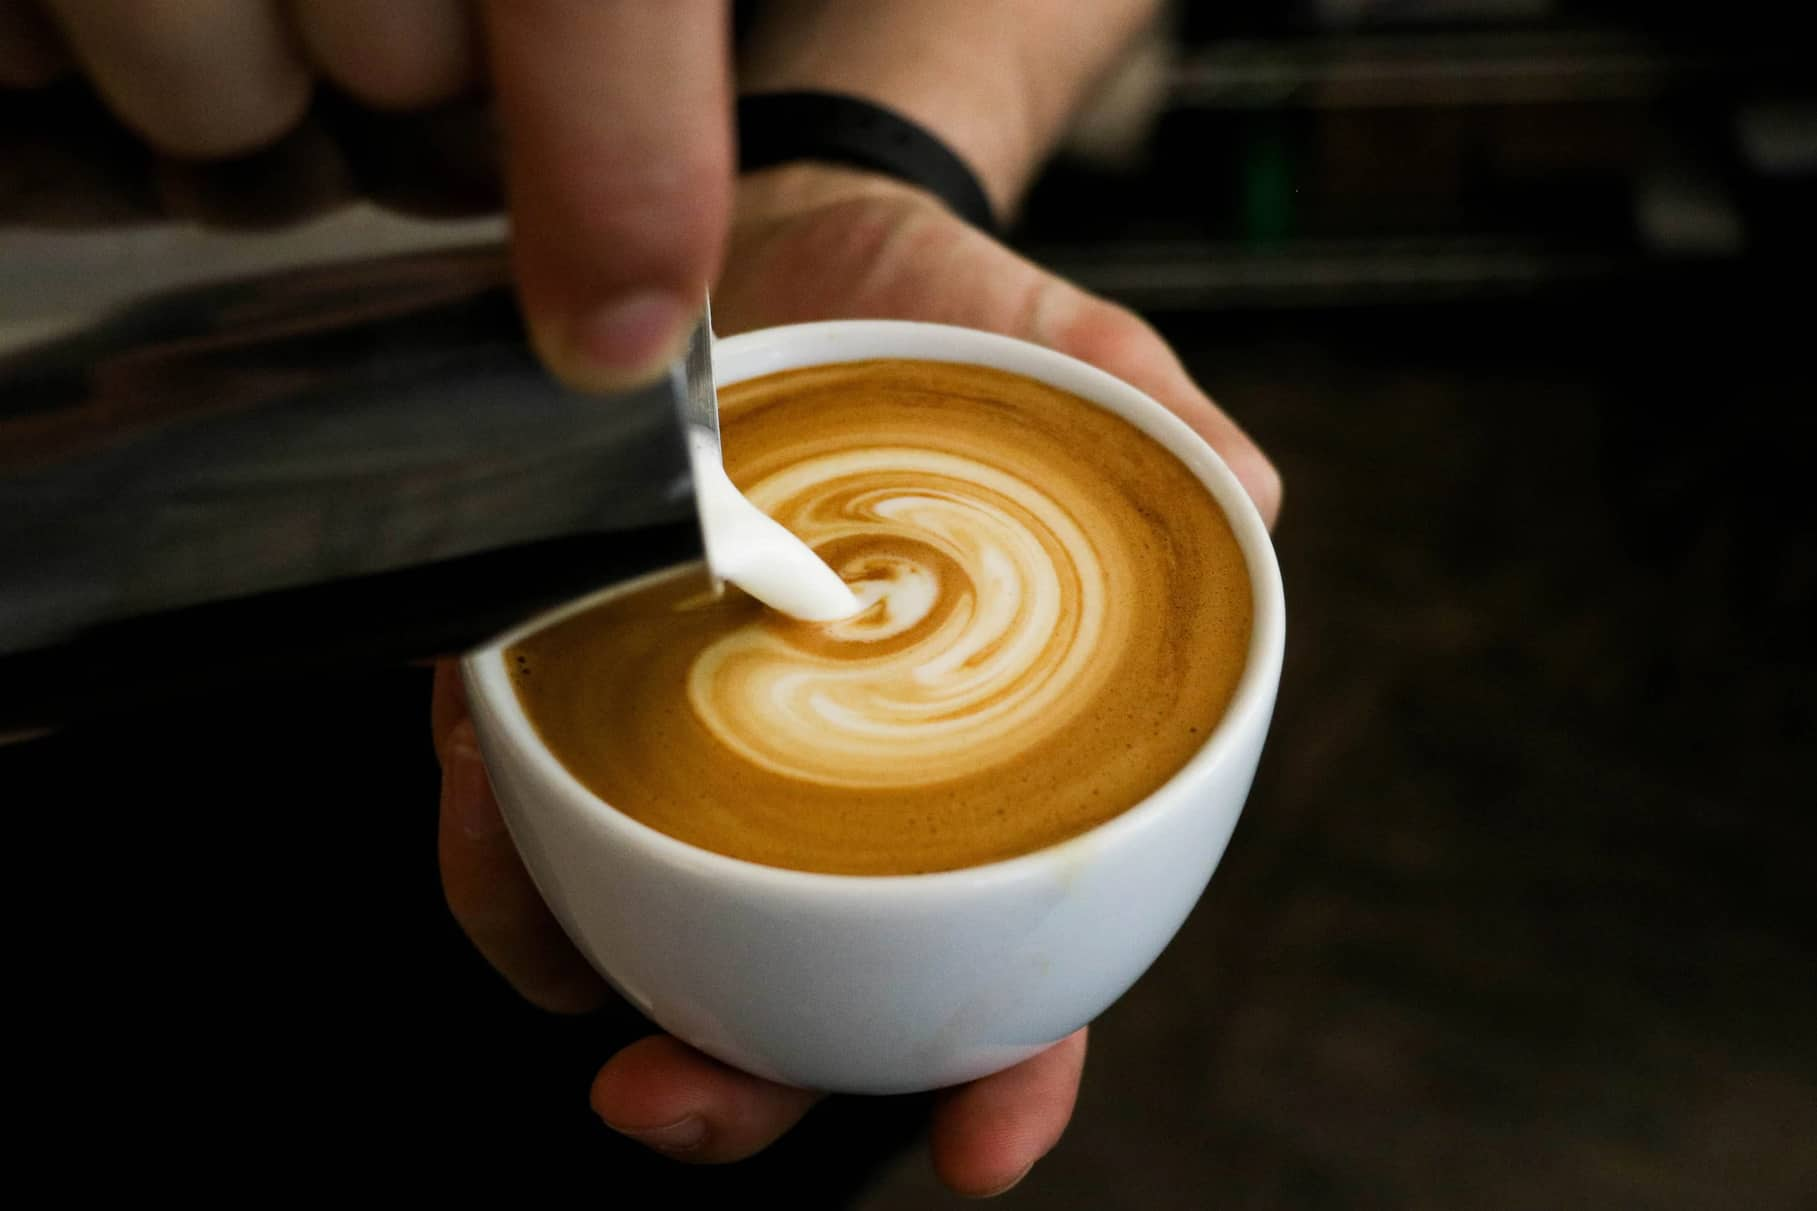 a close up of a cappuccino being poured